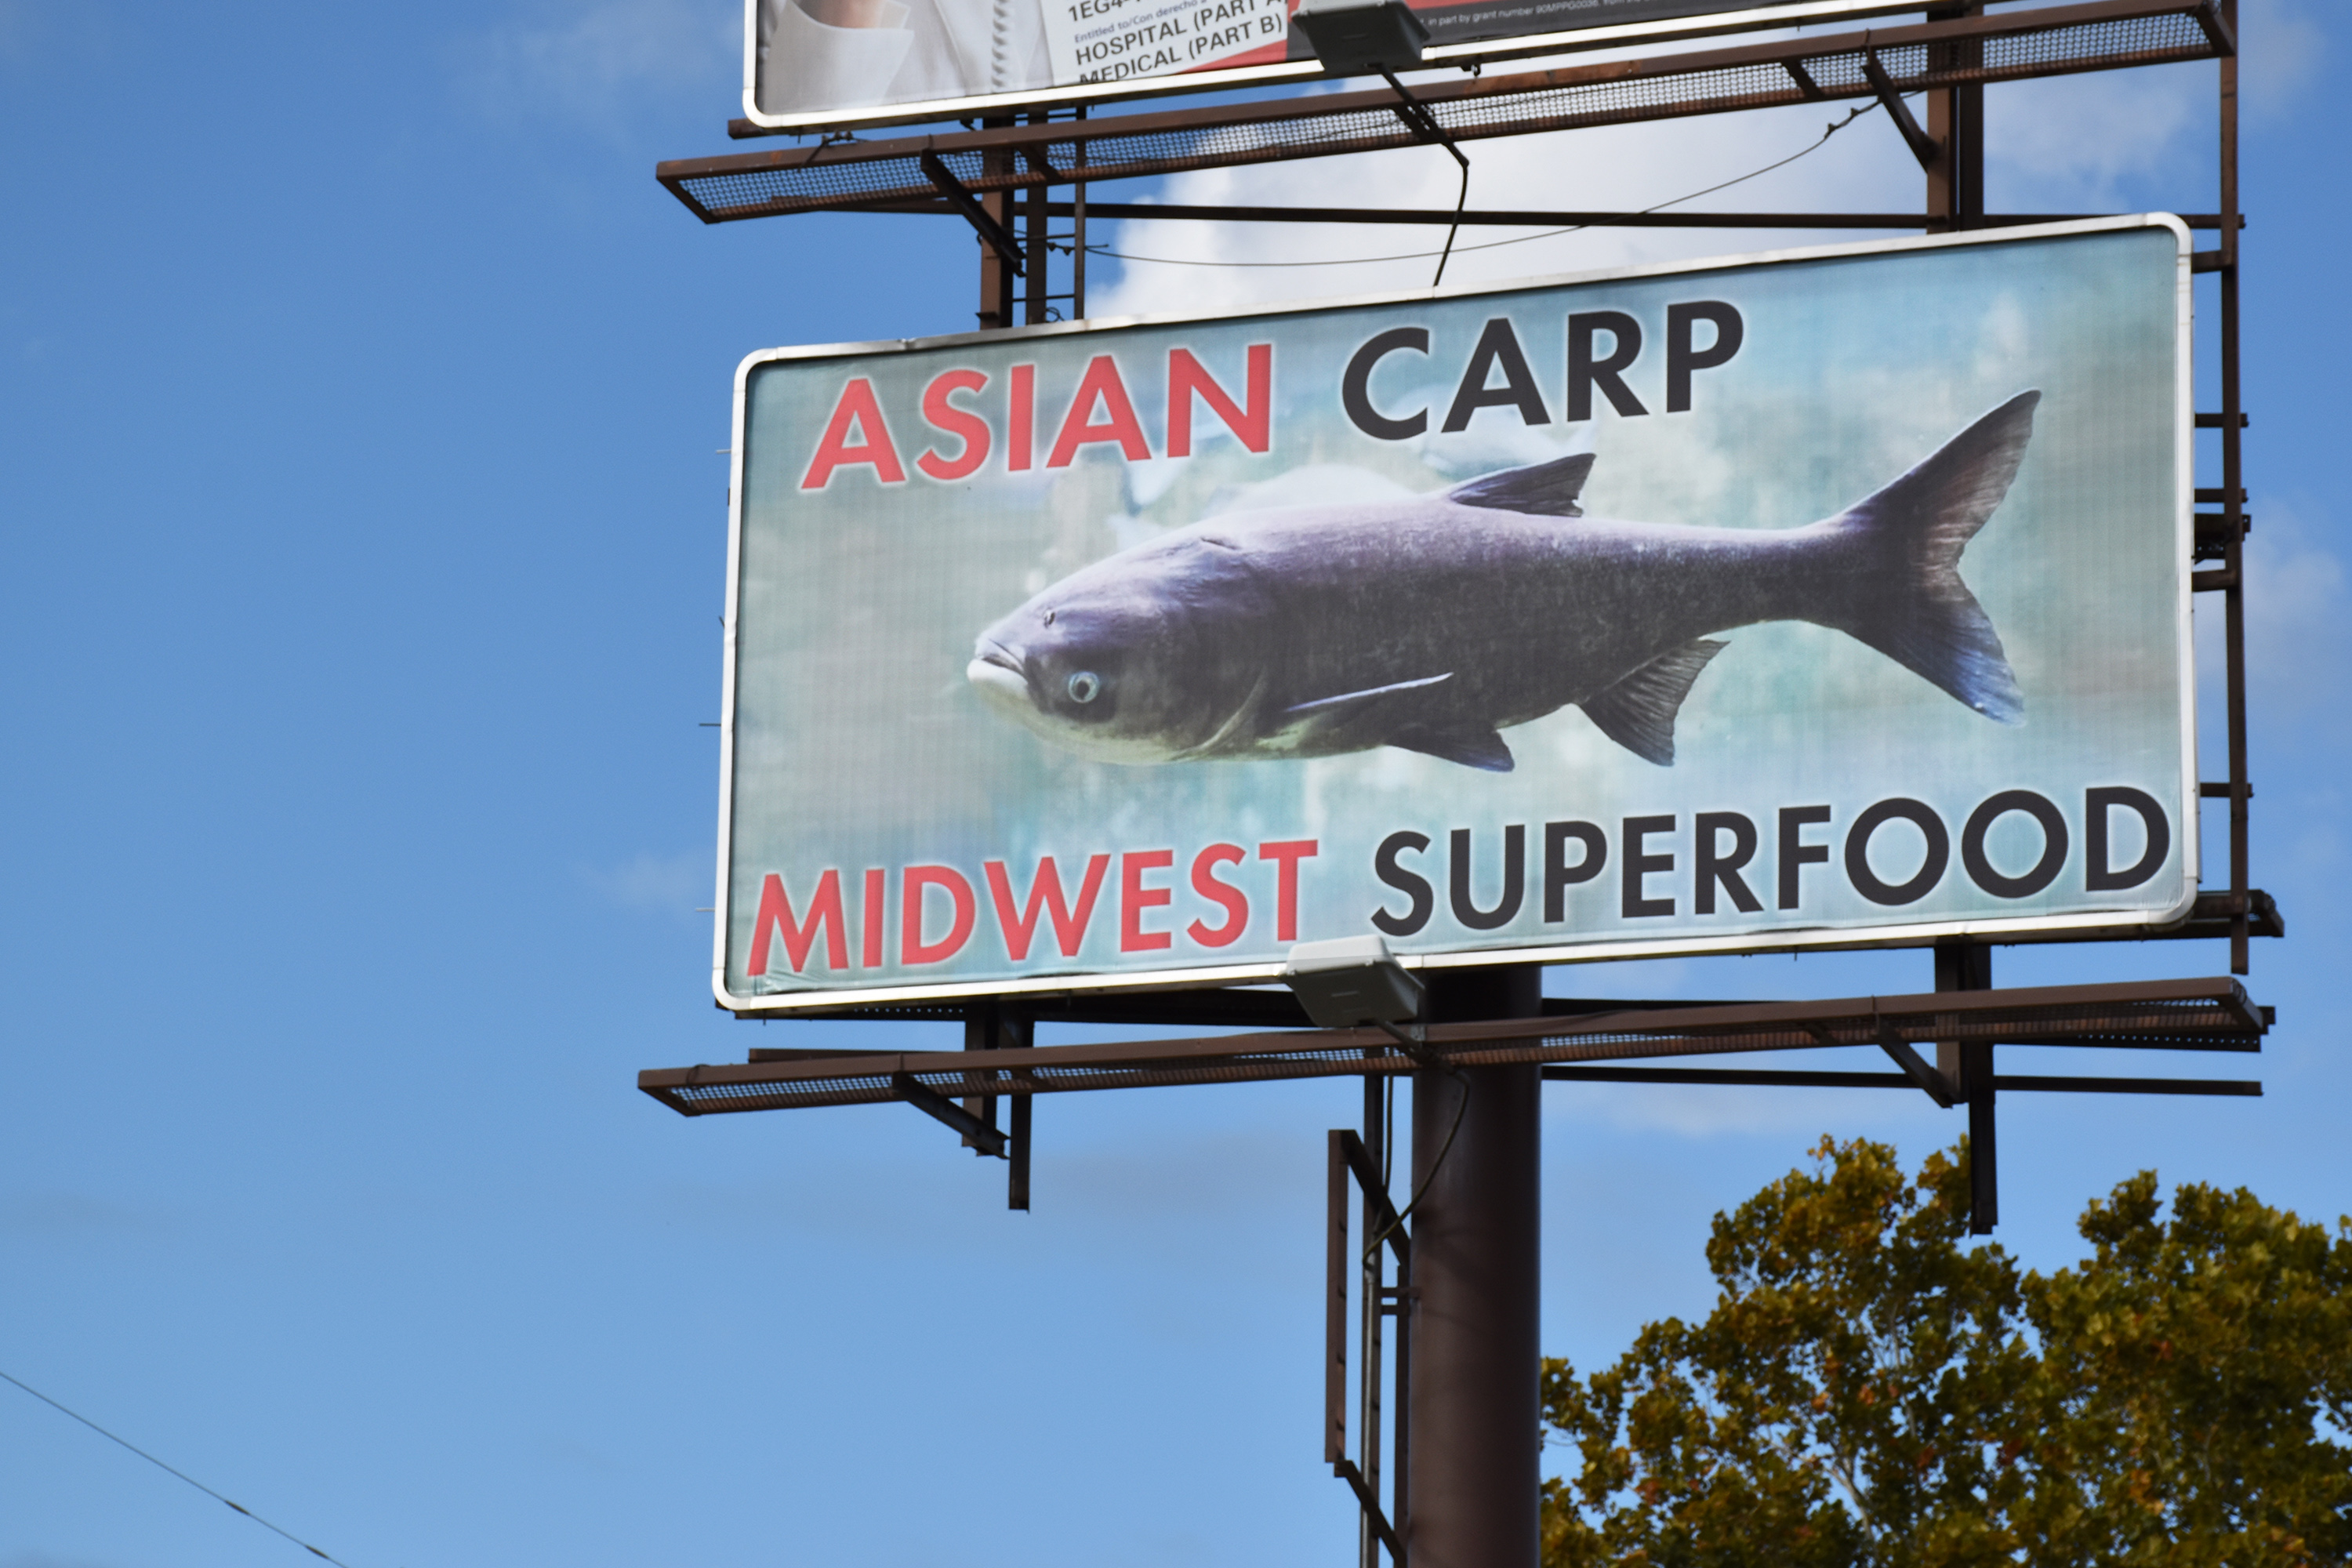 Asian_Carp_billboard_superfood